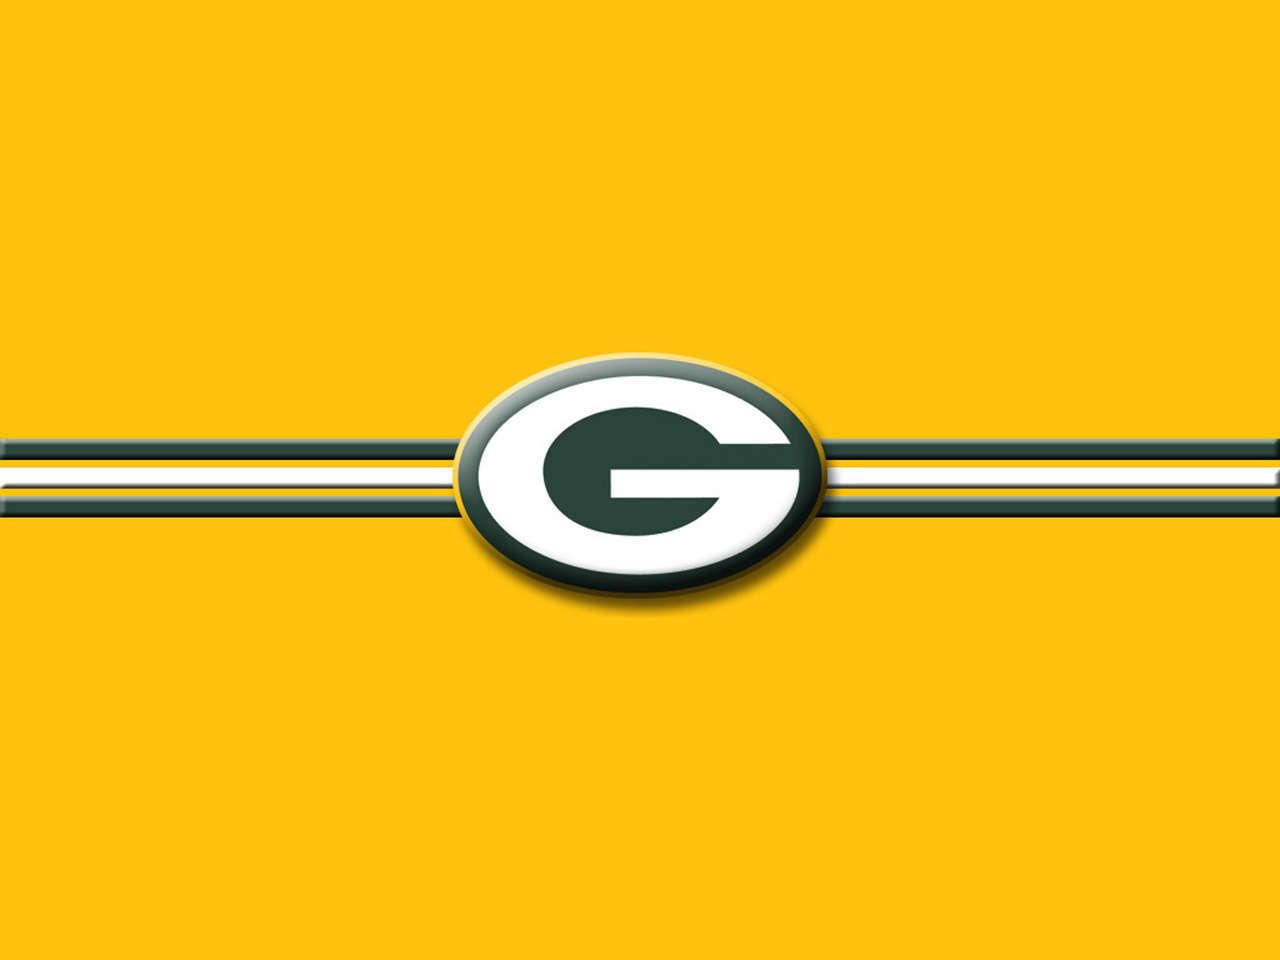 Green Bay Packers Logo NFL Wallpaper HD NFL Wallpaper